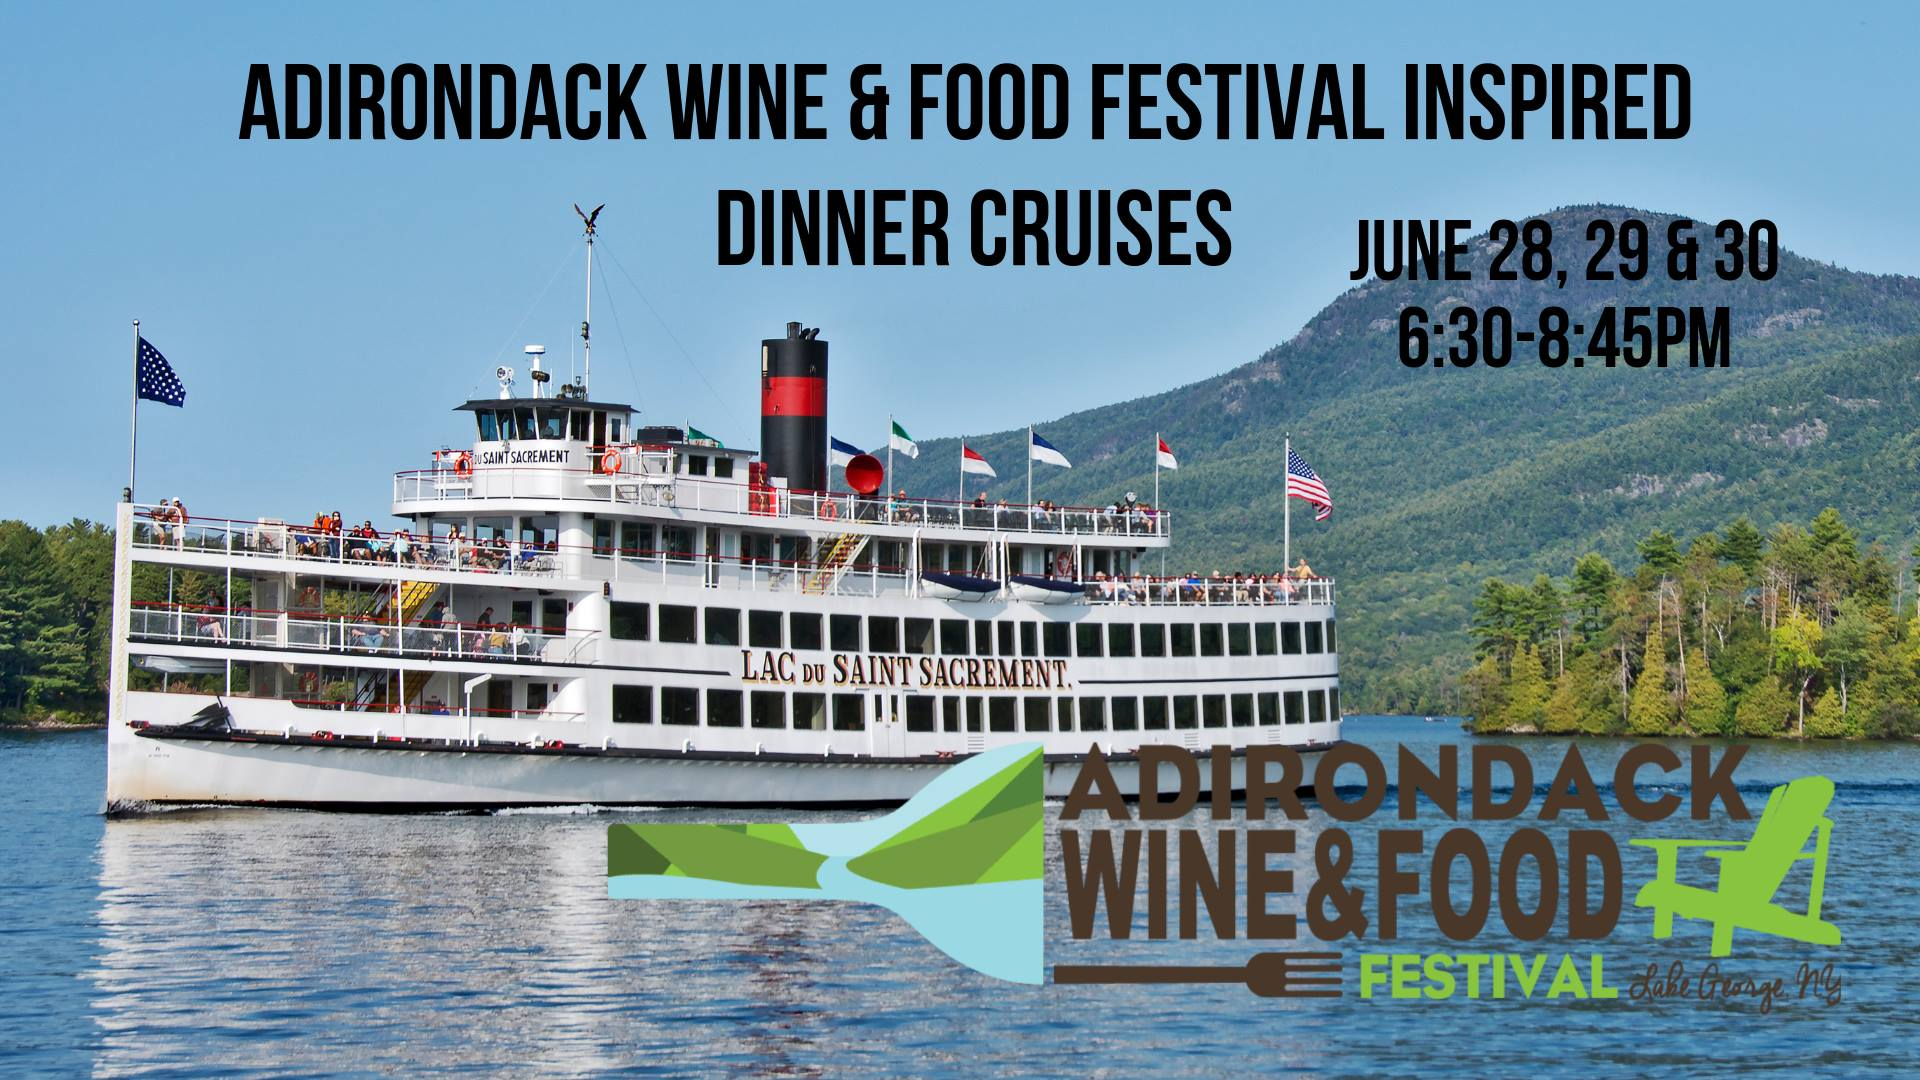 ADK wine and food festival LG steamboat company cruises